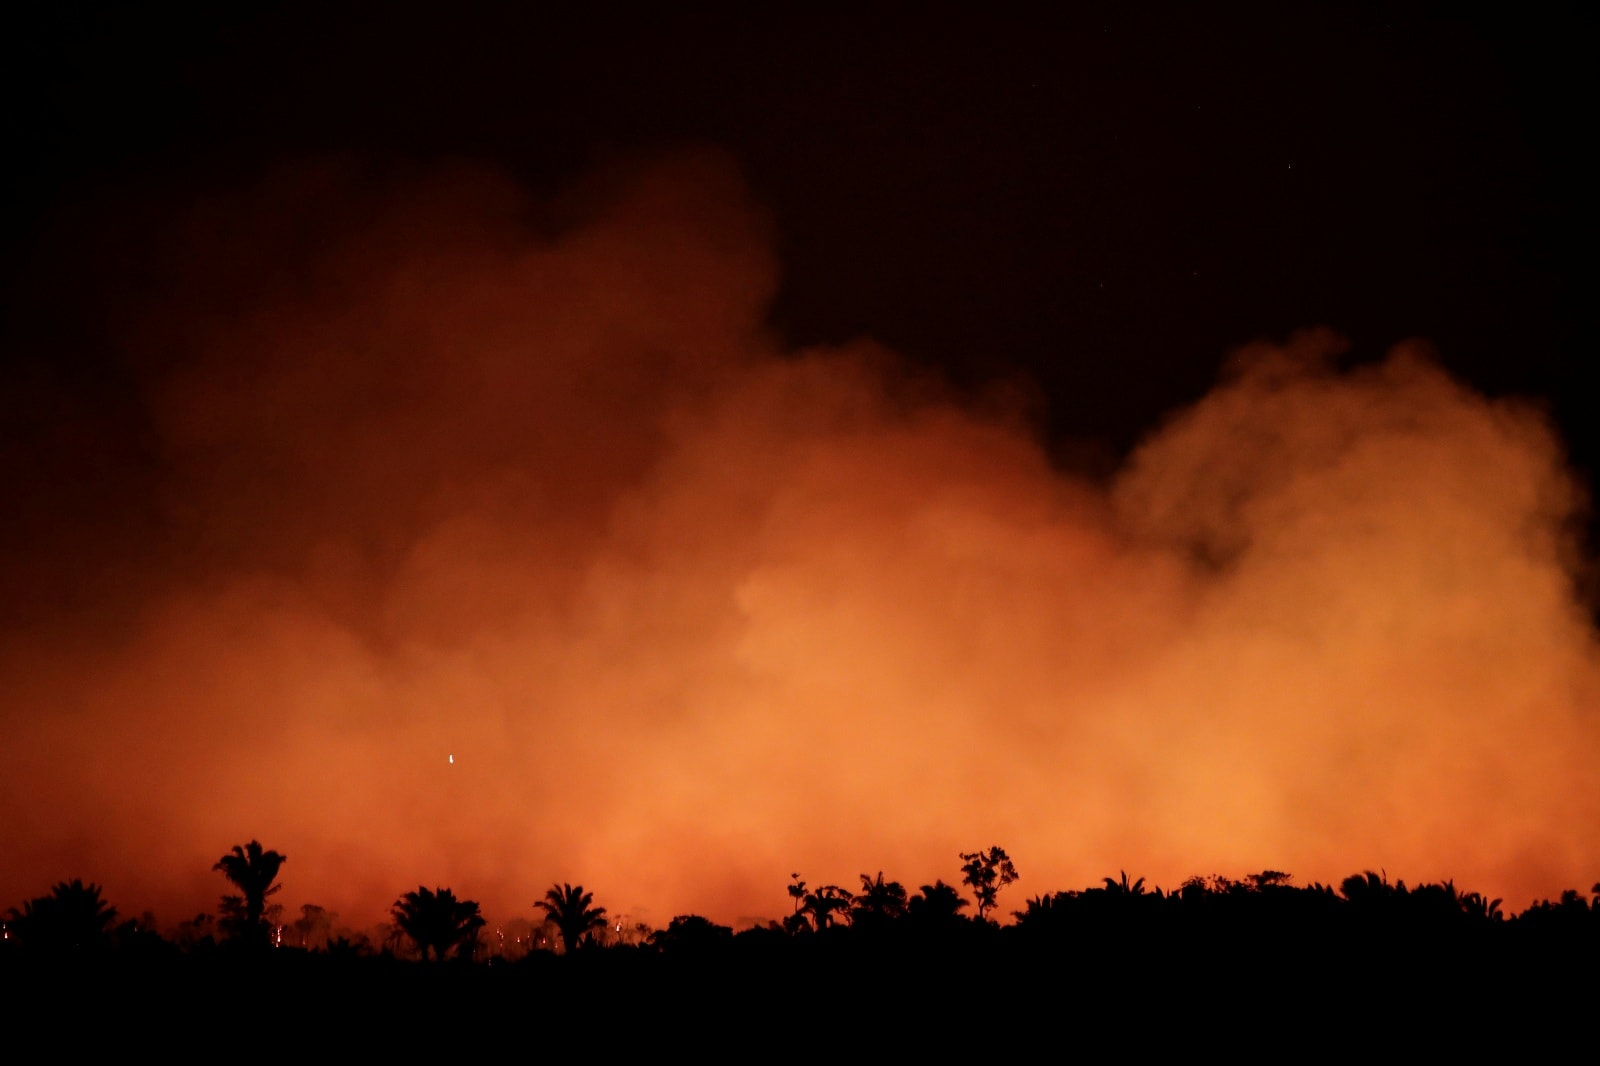 Smoke billows during a fire in an area of the Amazon rainforest near Humaita, Amazonas State, Brazil, Brazil August 17, 2019. Picture Taken August 17, 2019. REUTERS/Ueslei Marcelino